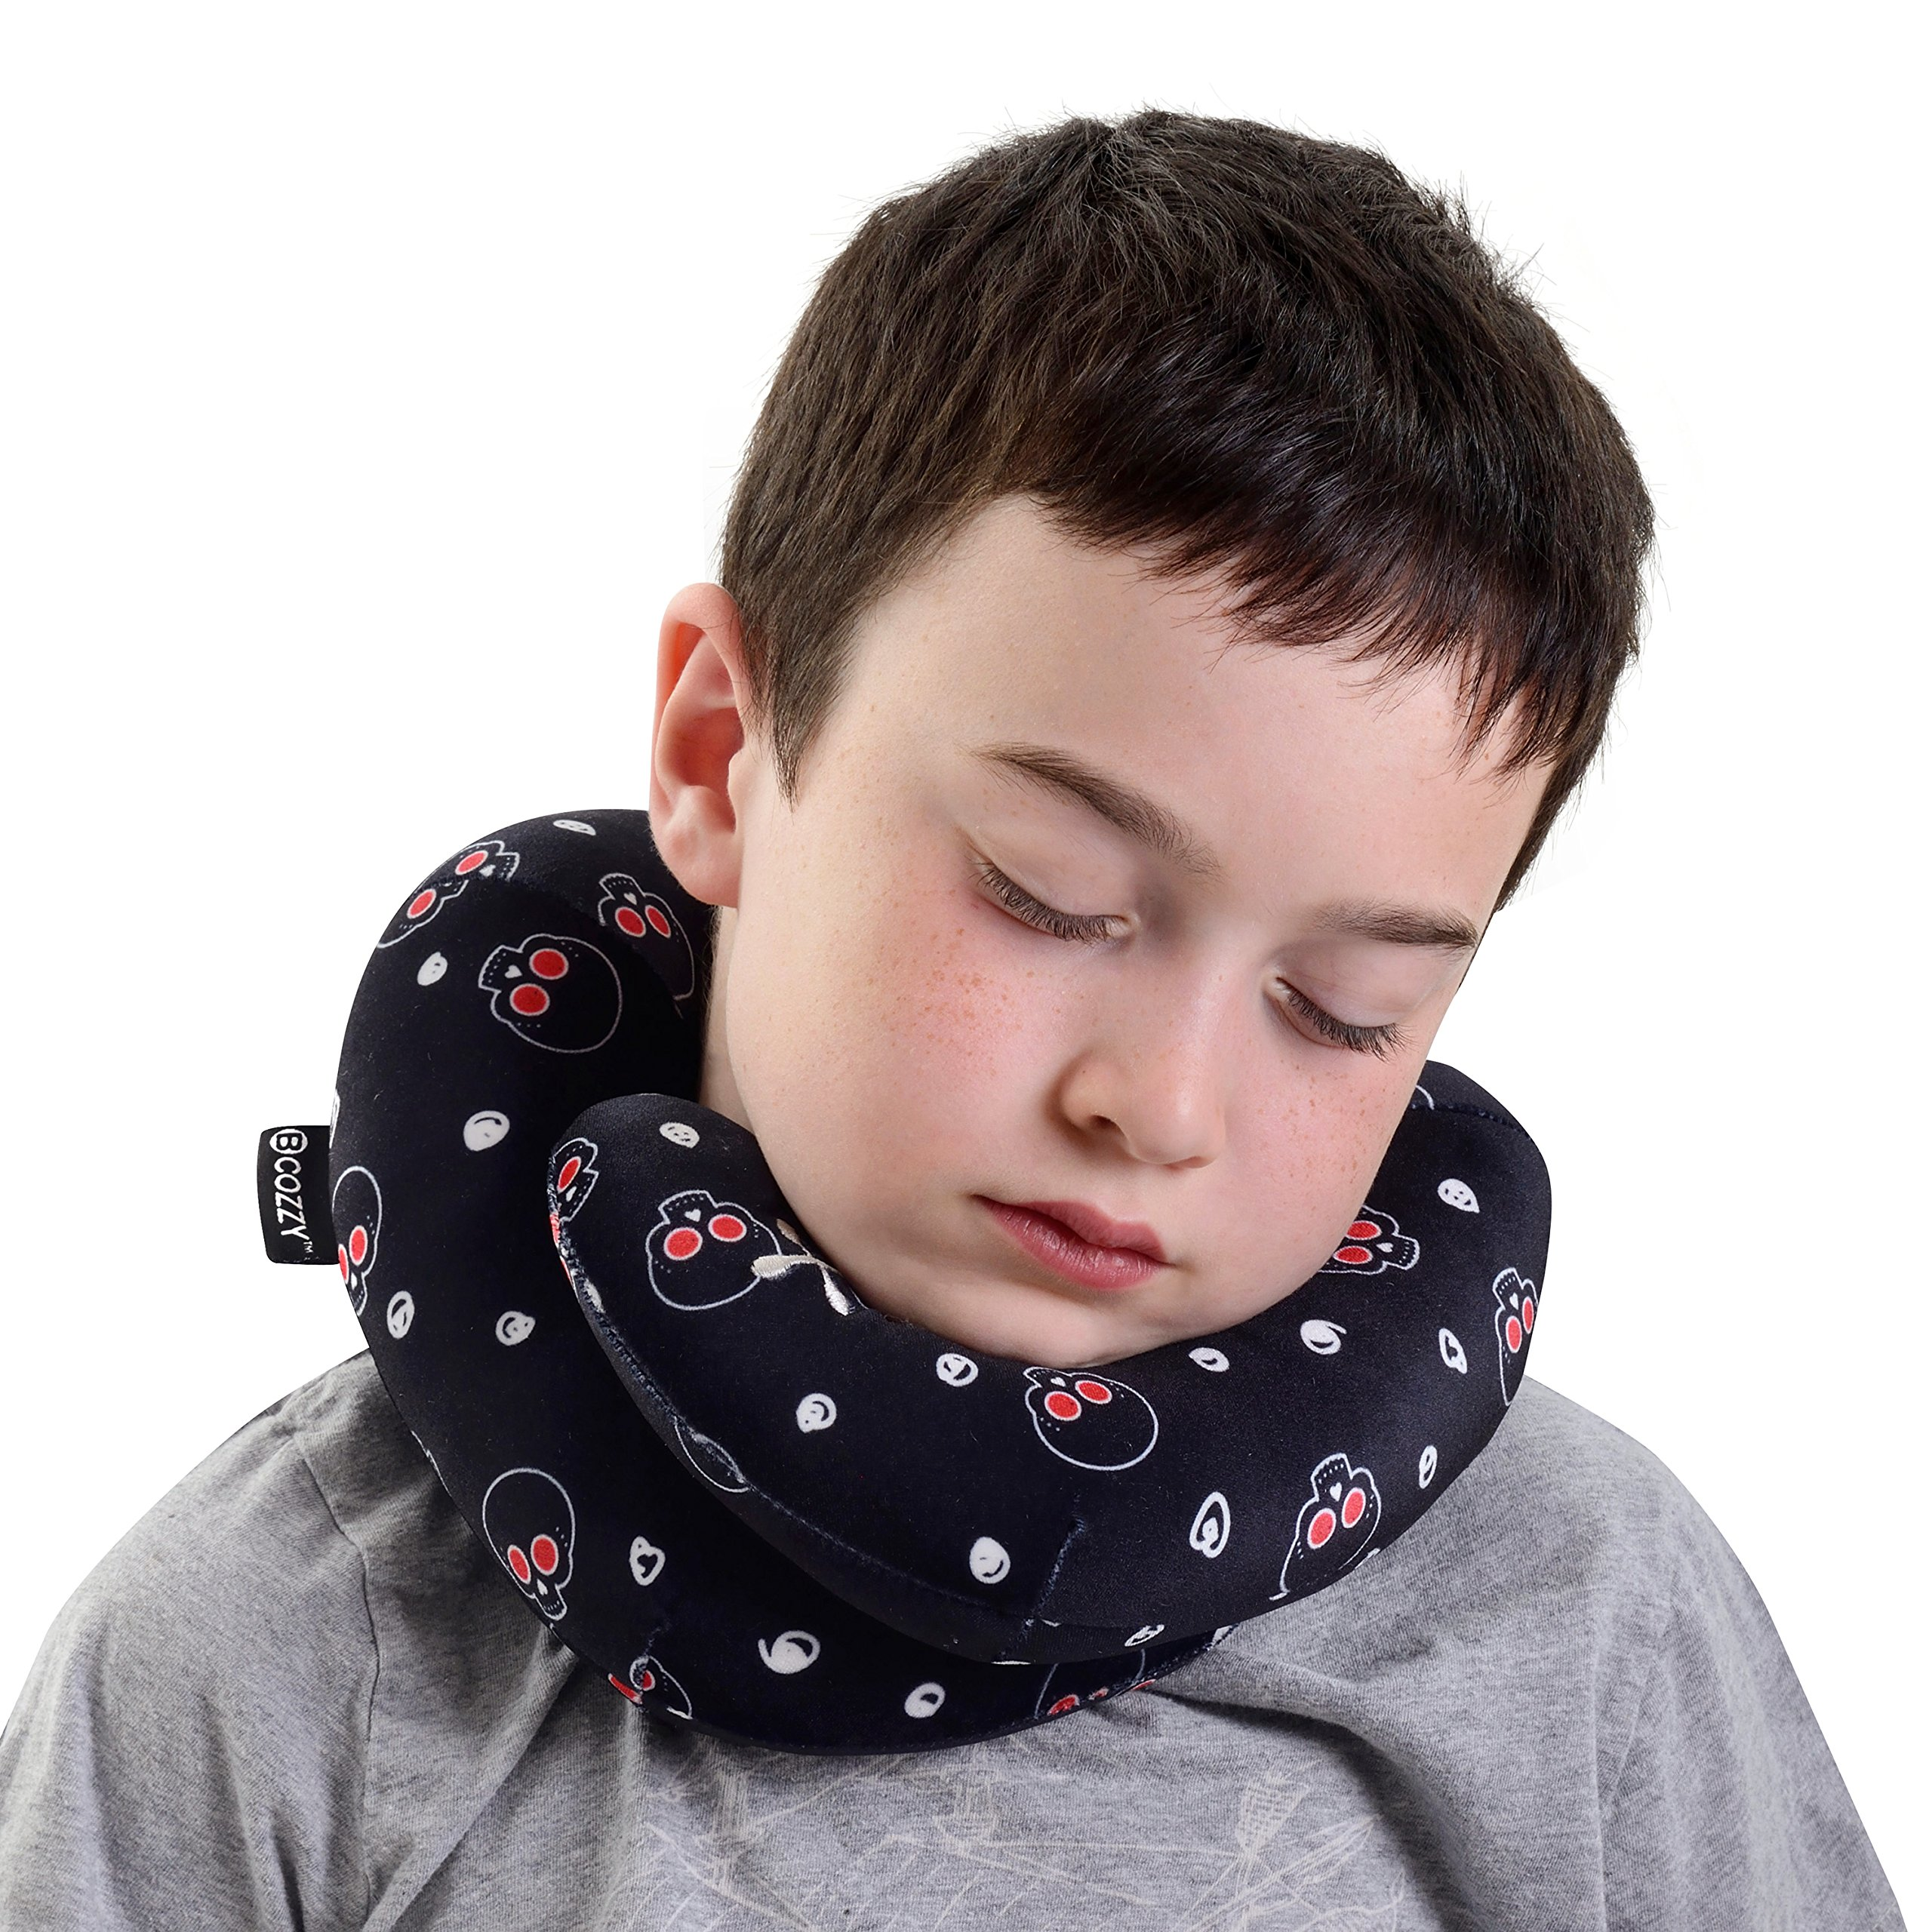 BCOZZY Kids Chin Supporting Travel Neck Pillow - Supports The Head, Neck Chin in in Any Sitting Position. A Patented Product. Child Size, Black Skulls